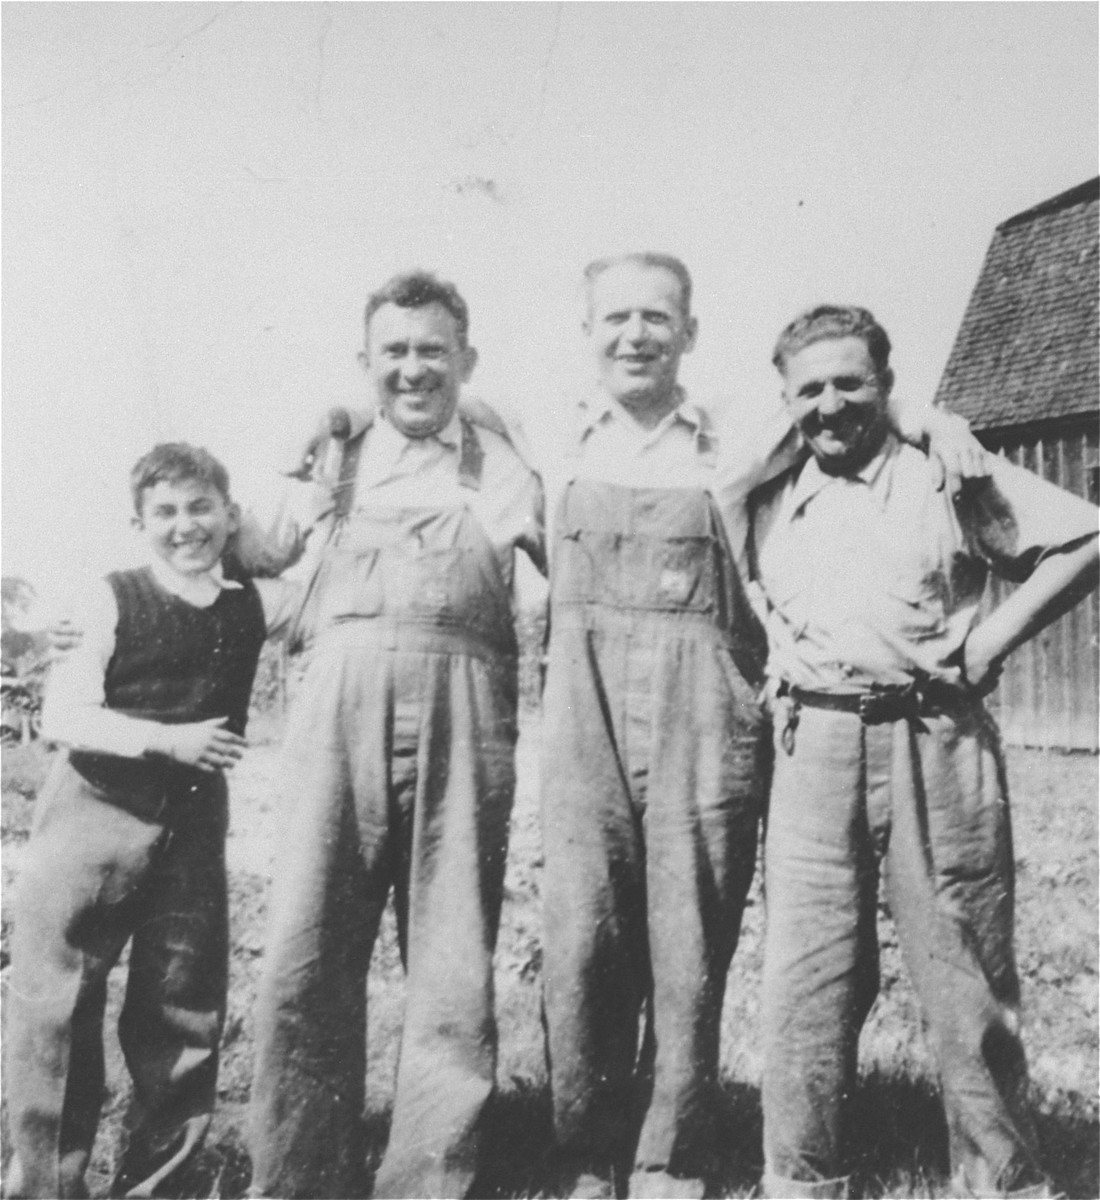 The Muller brothers, Nandor (right) and Lajos (second from the left), pose with a third Jewish refugee from central Europe who was also compelled to become a farmer in order to gain entry into Canada in the late 1930's.